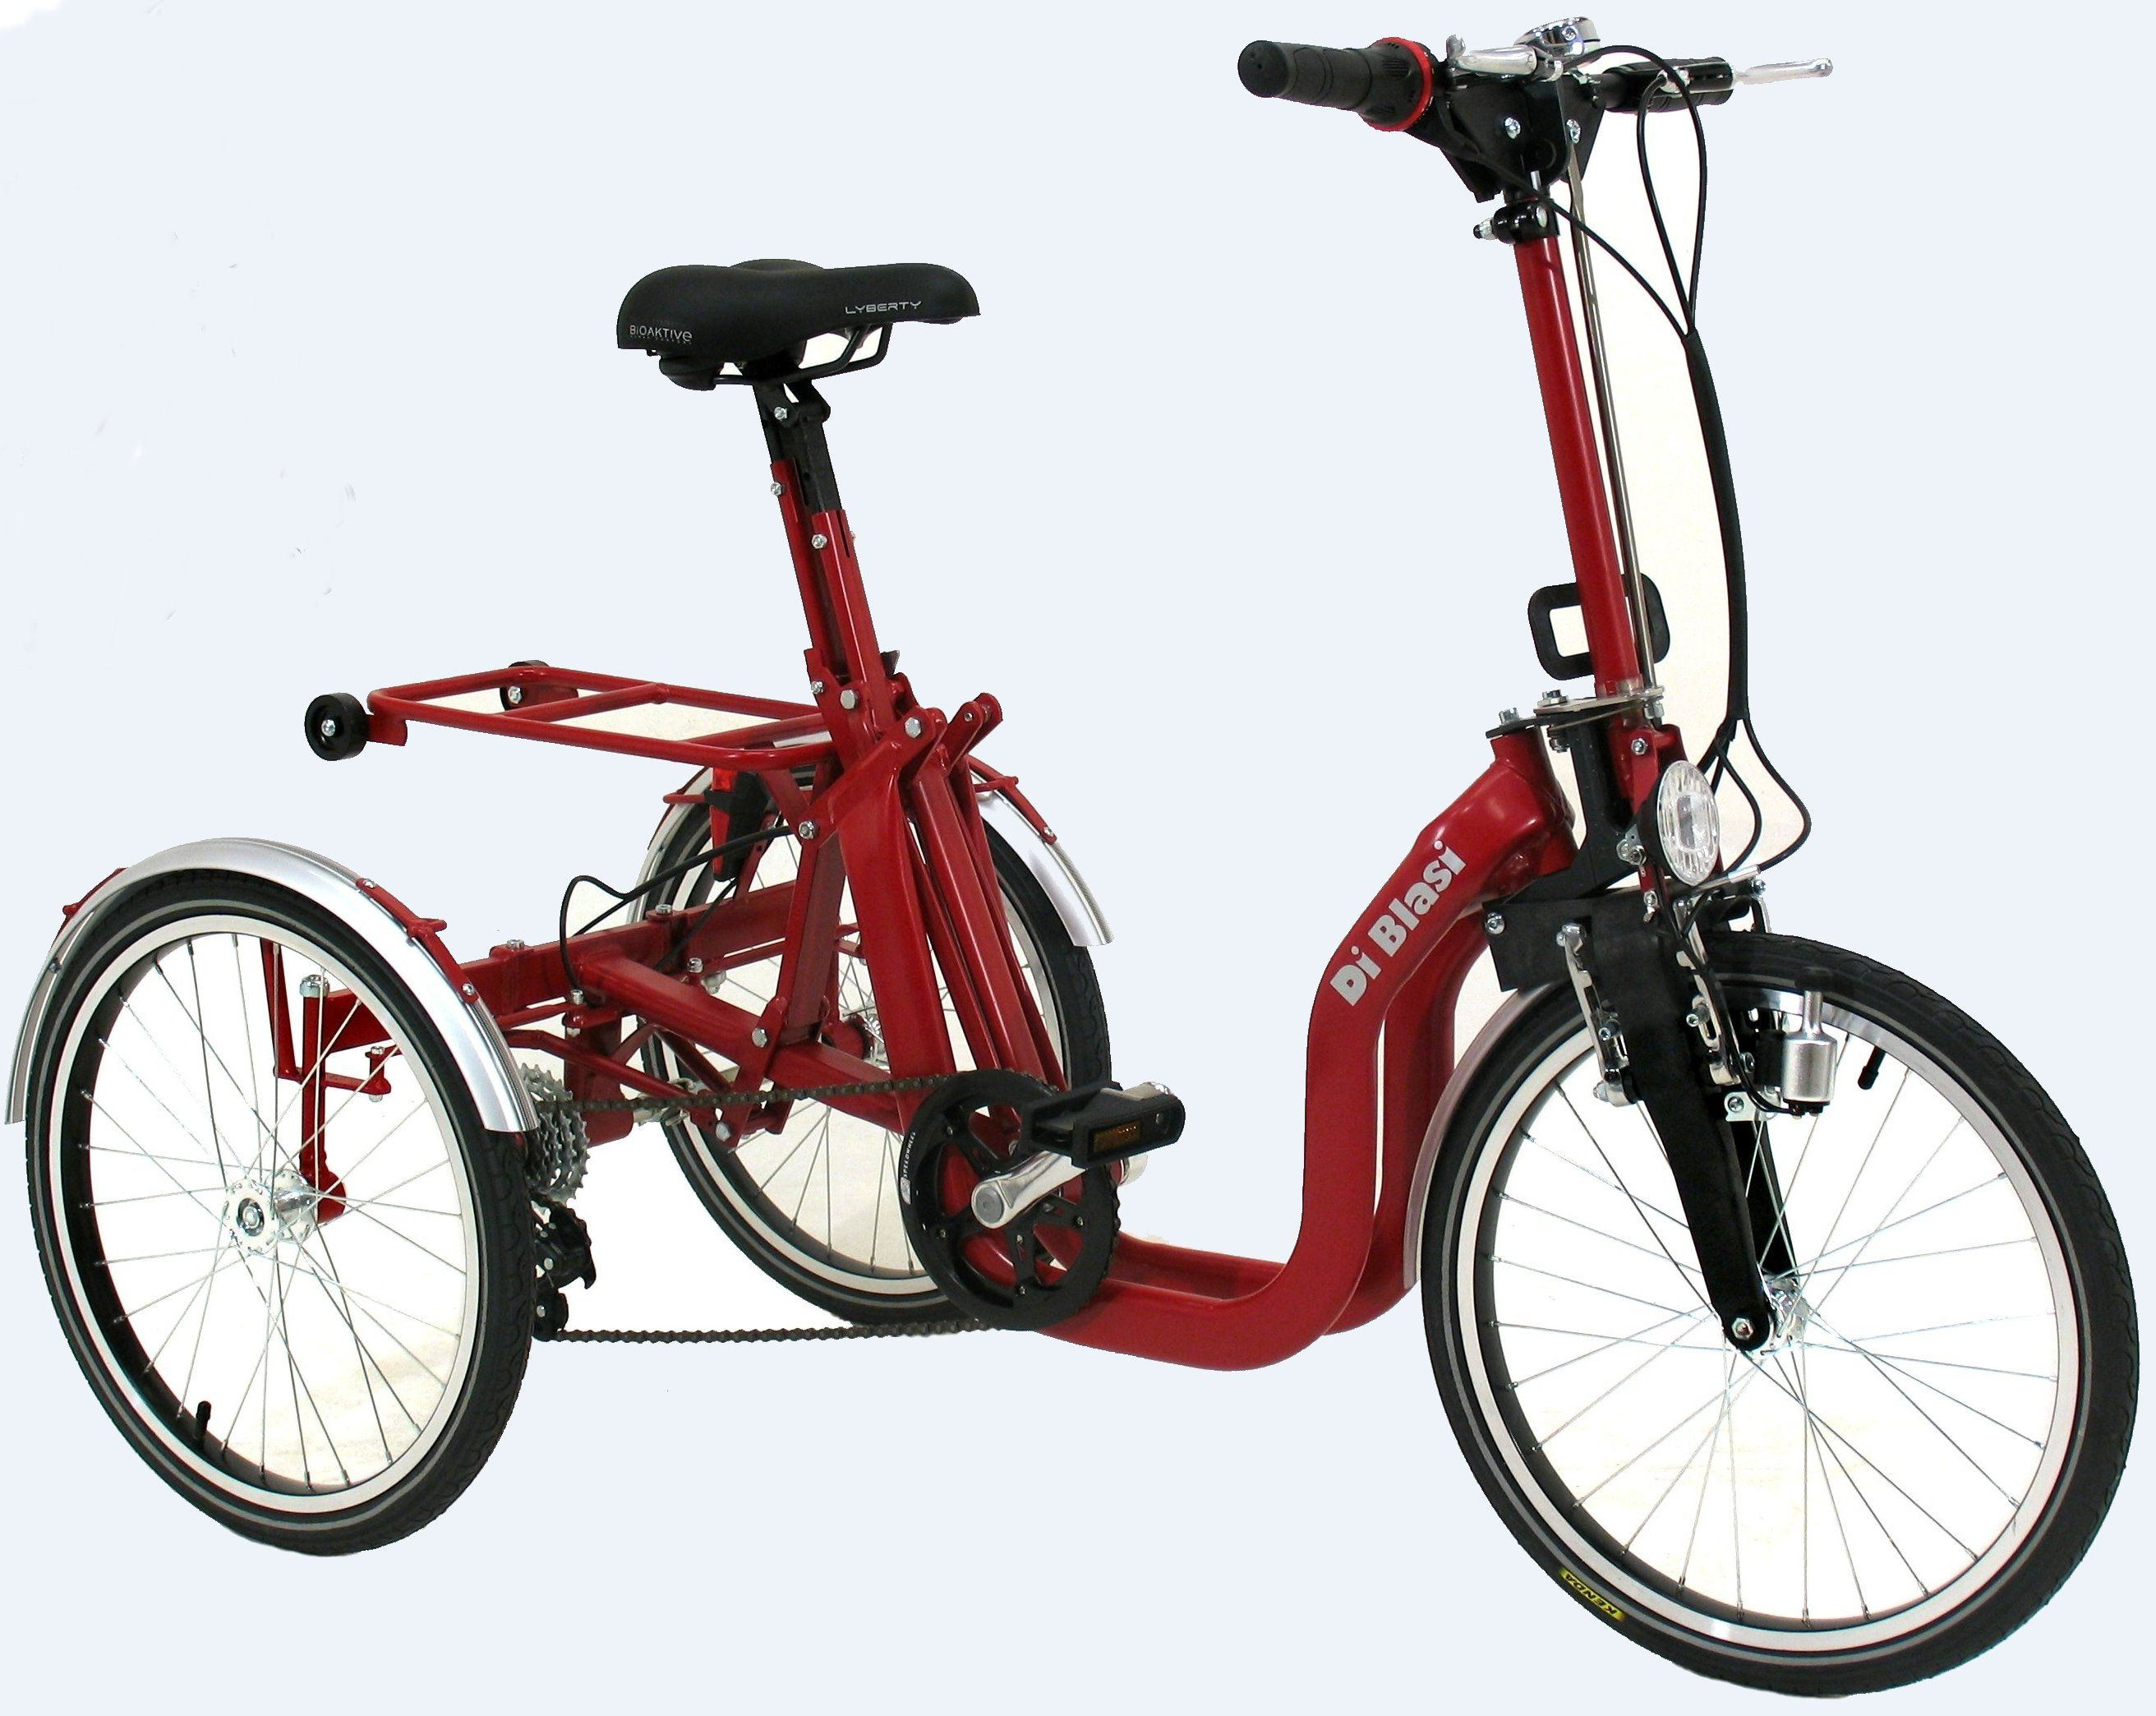 Di Blasi R32 Folding 5 Speed Special Needs Italian Tricycle